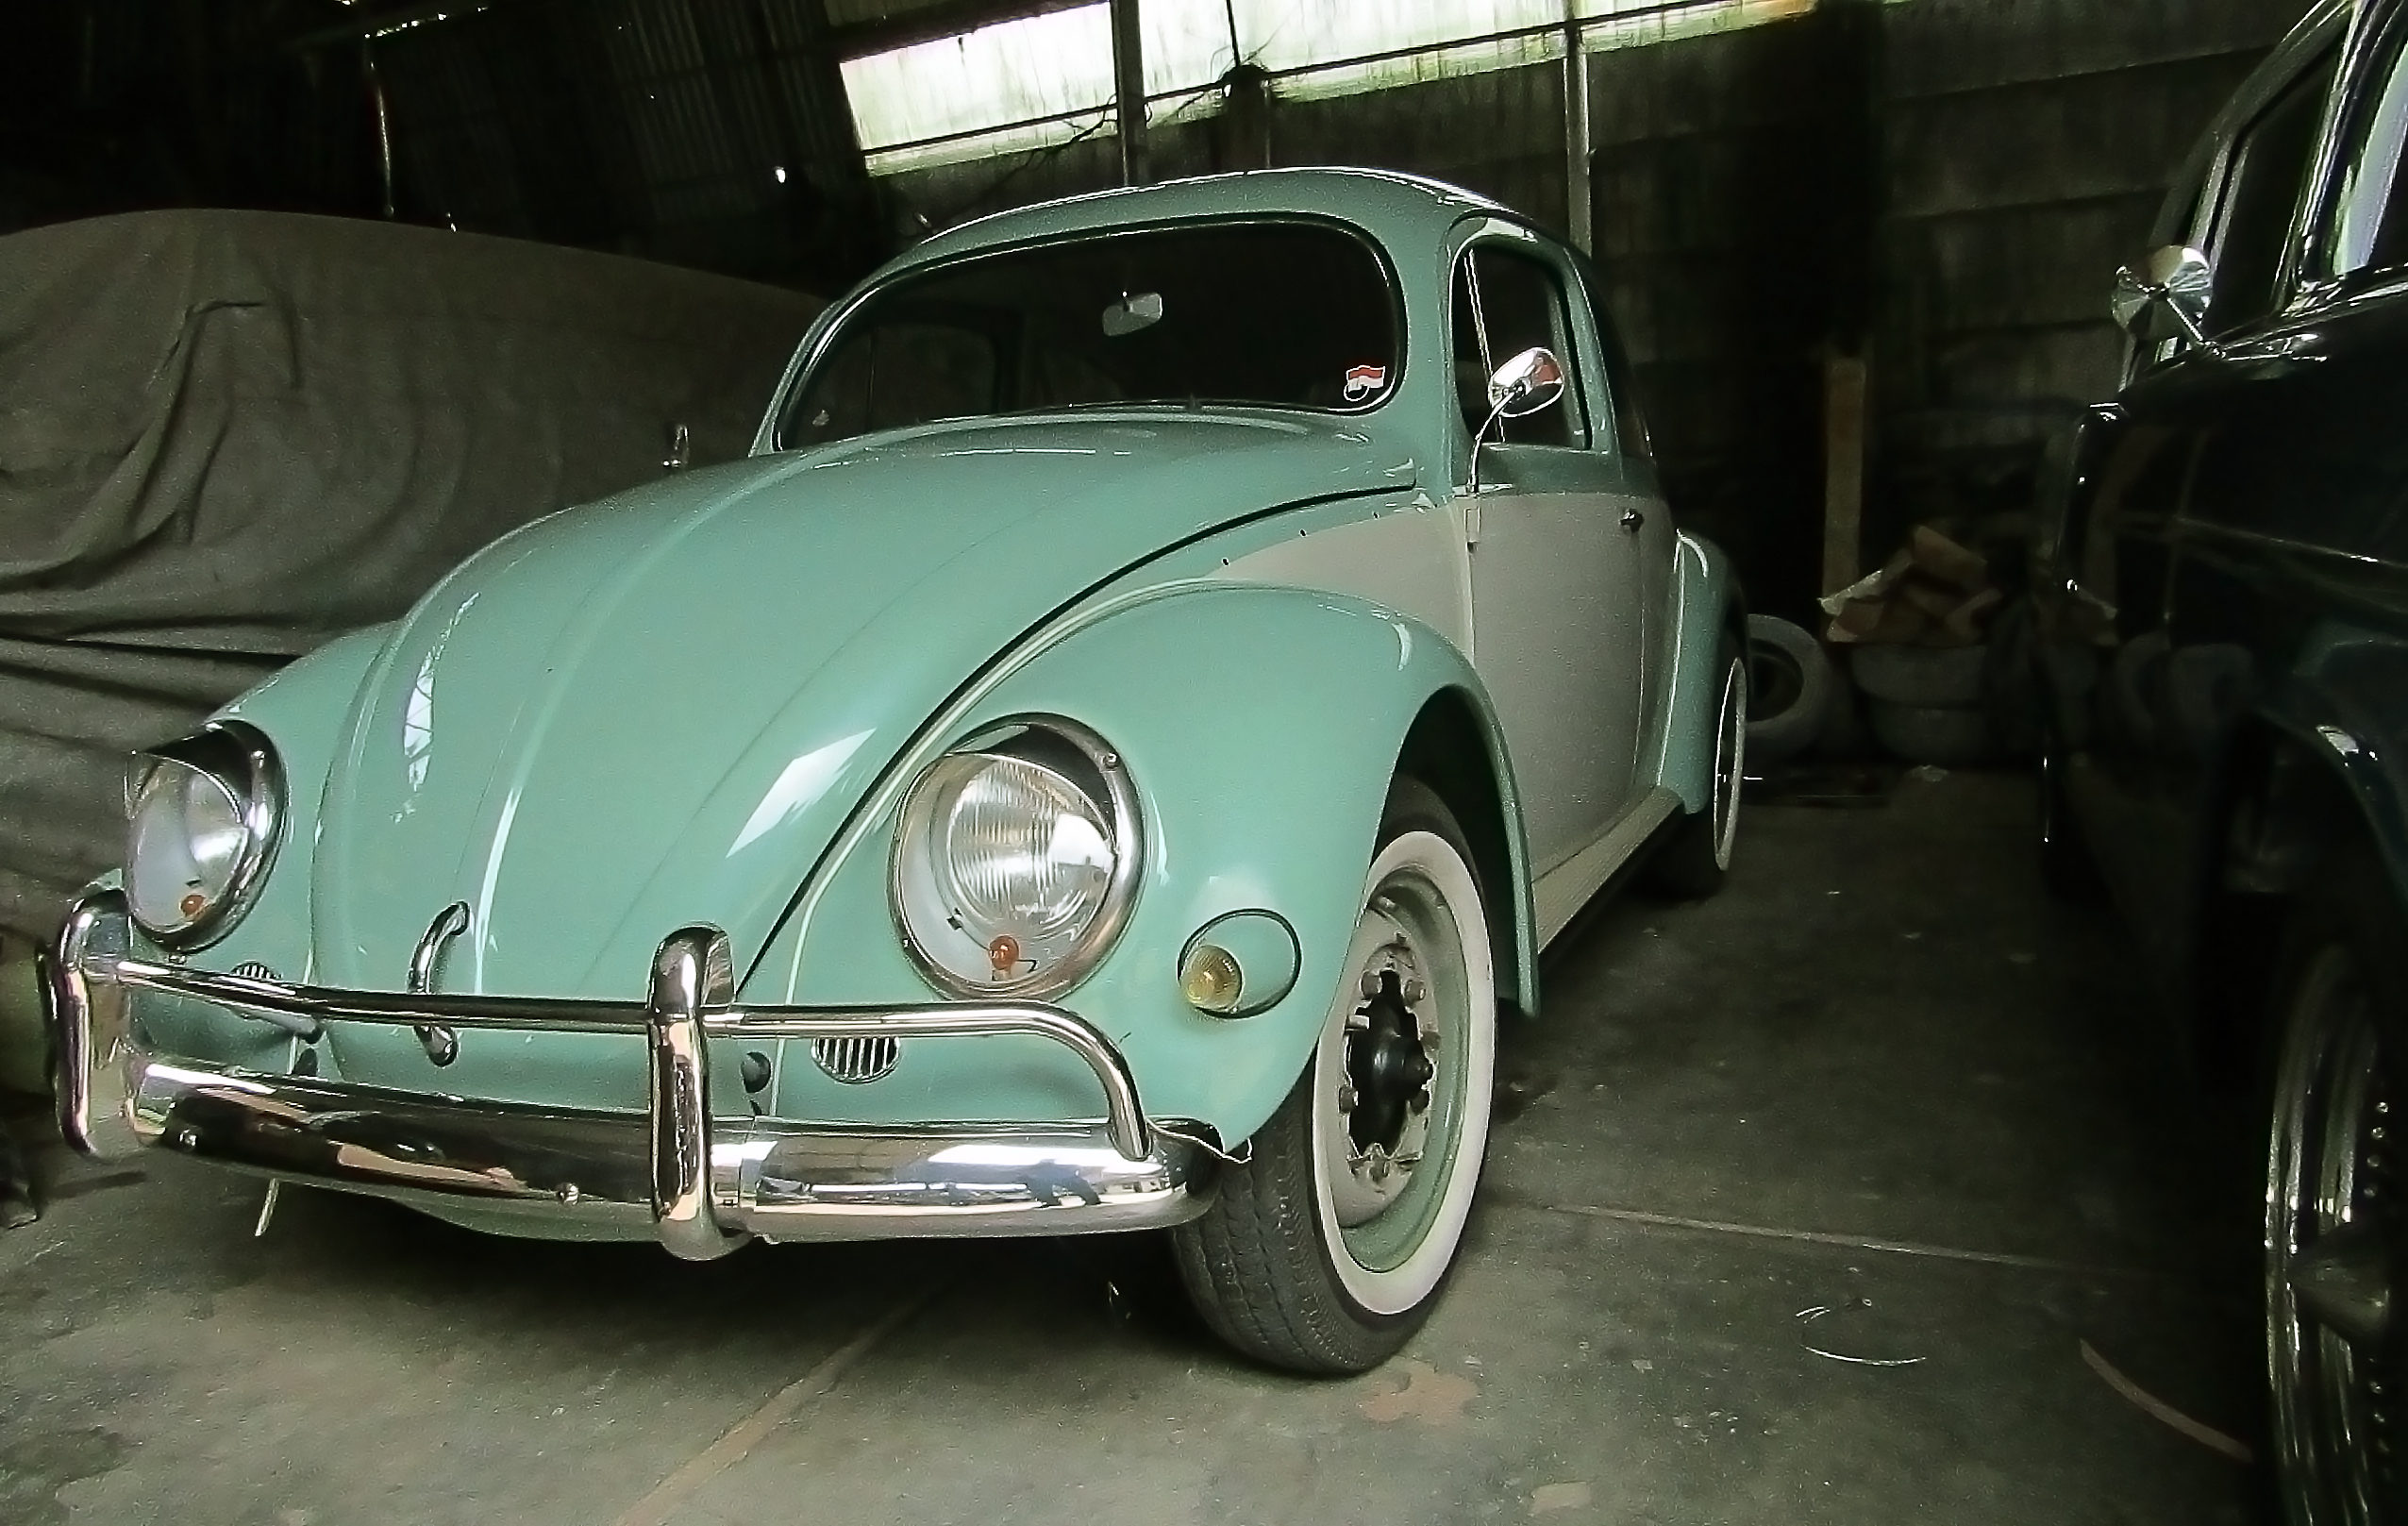 vw beetle 1 www-re-garage-com.jpg.JPG